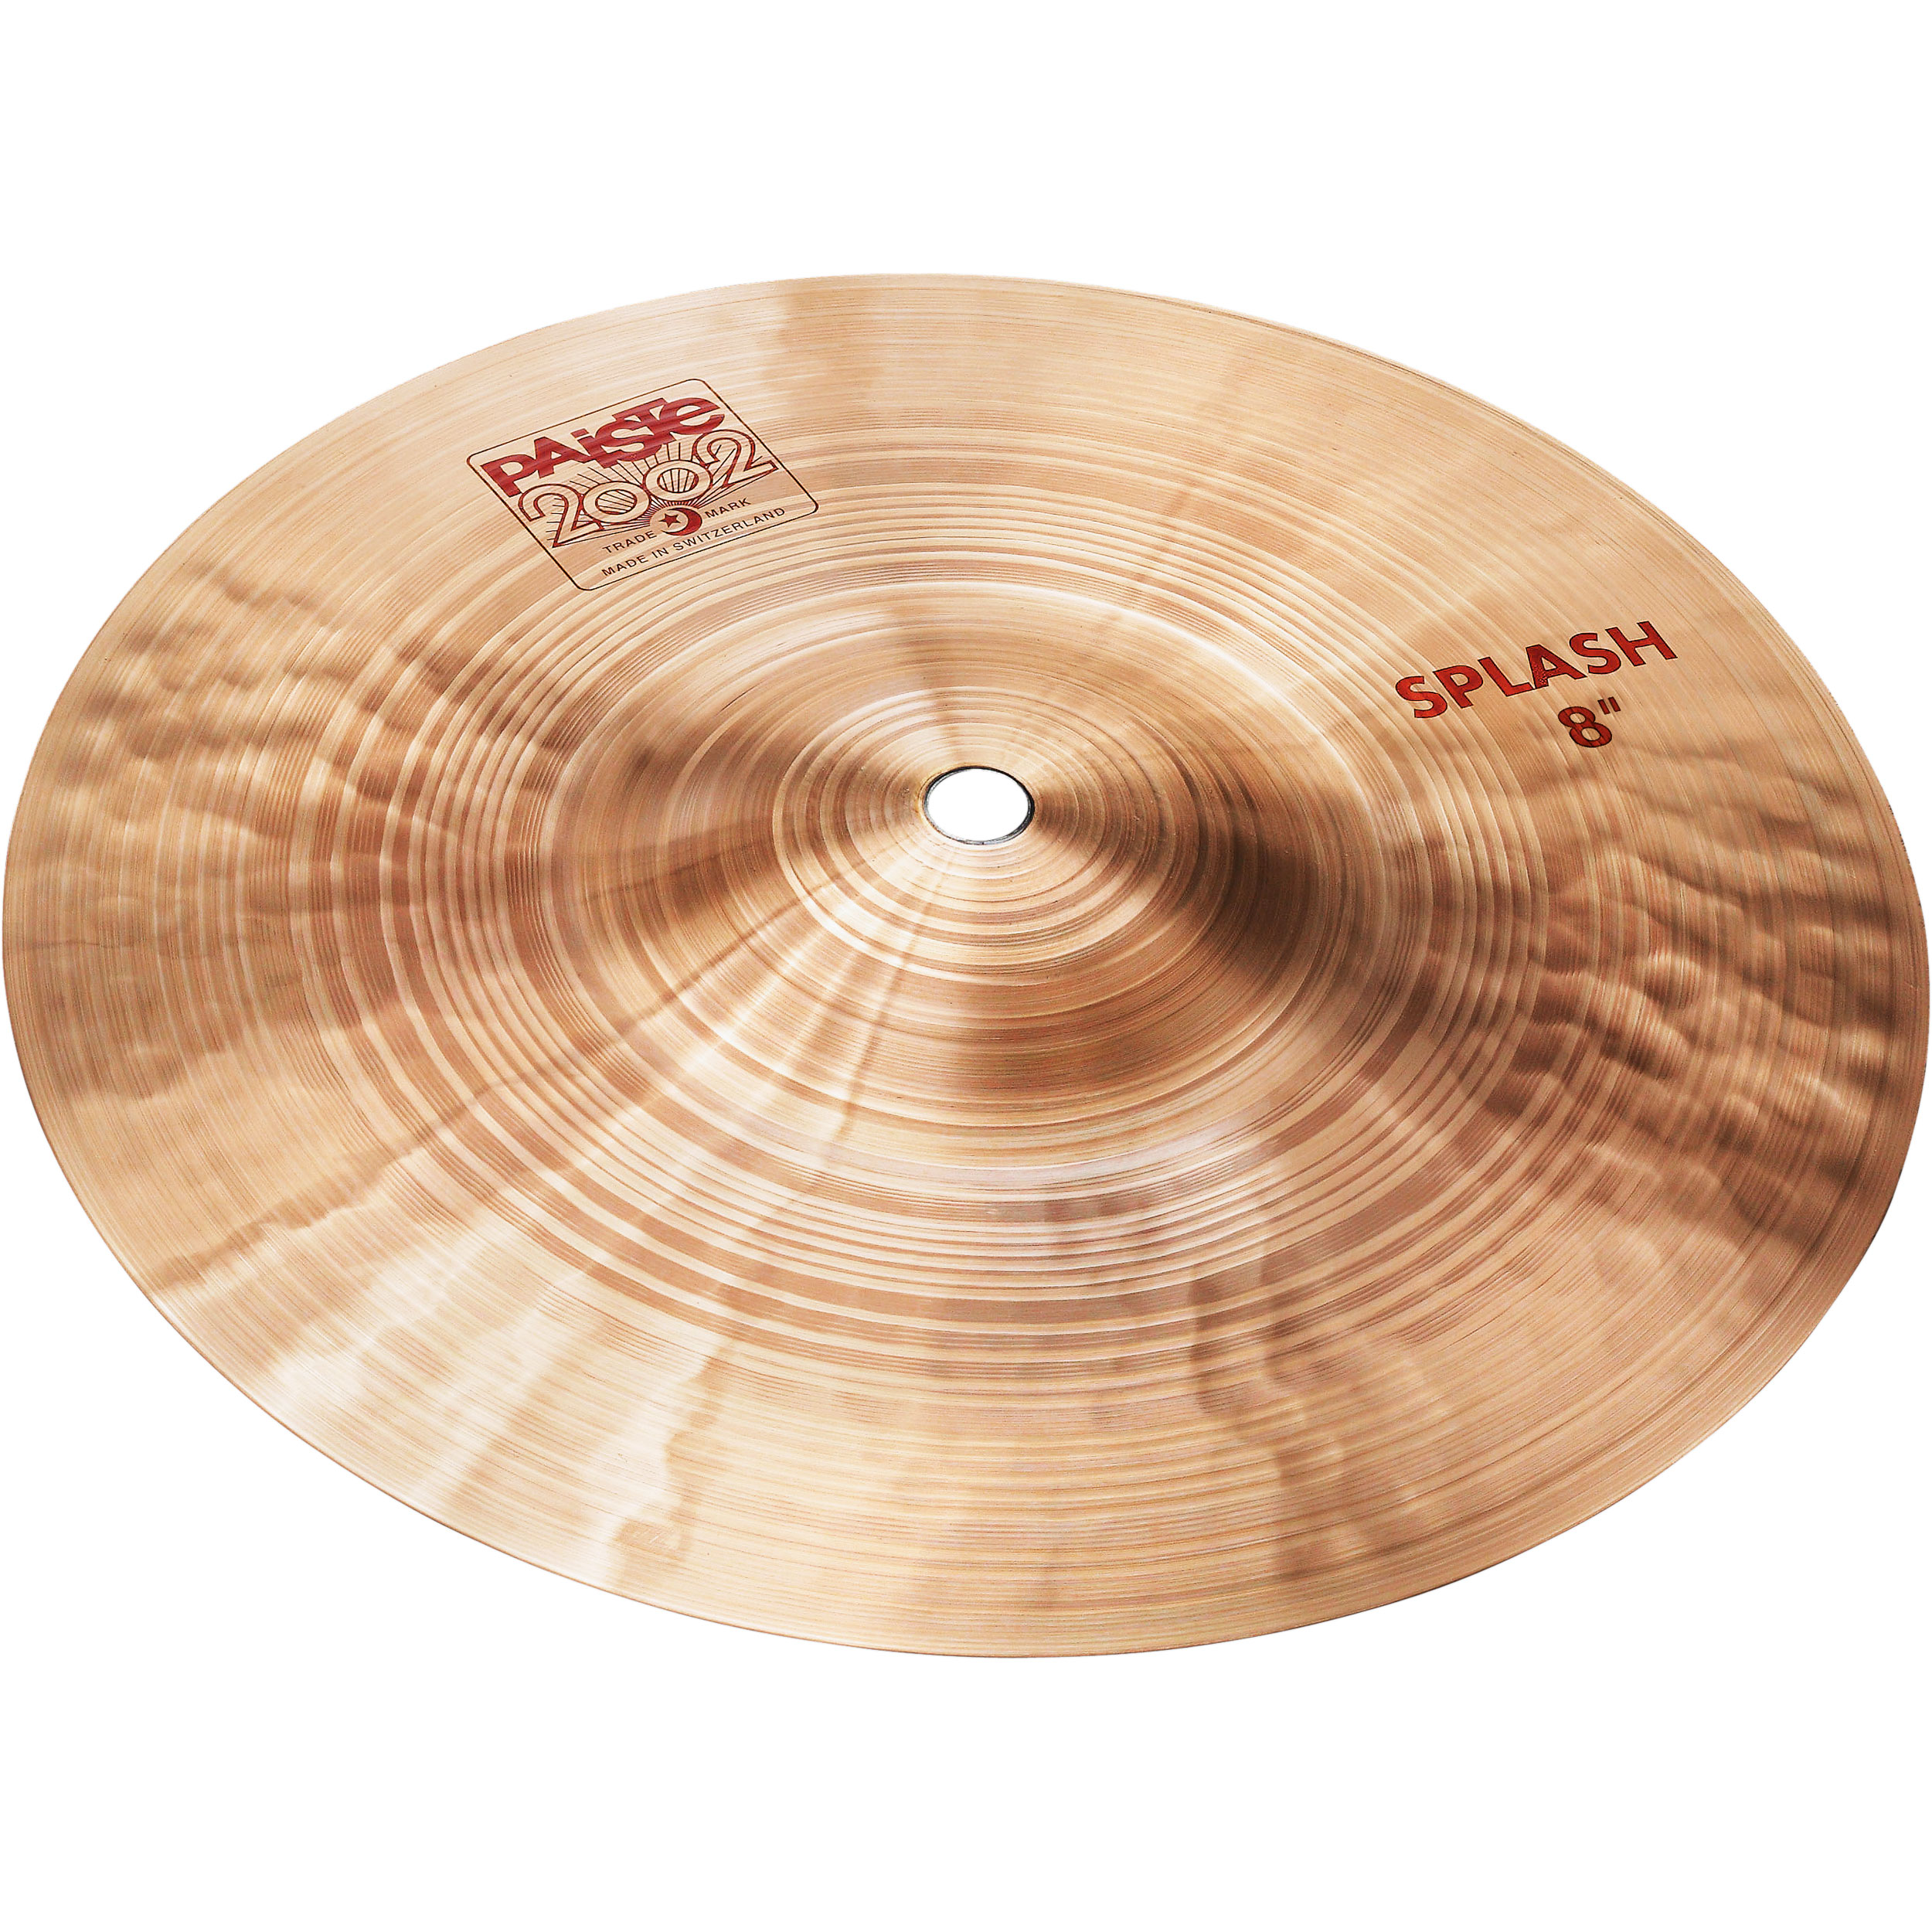 "Paiste 8"" 2002 Series Splash Cymbal"